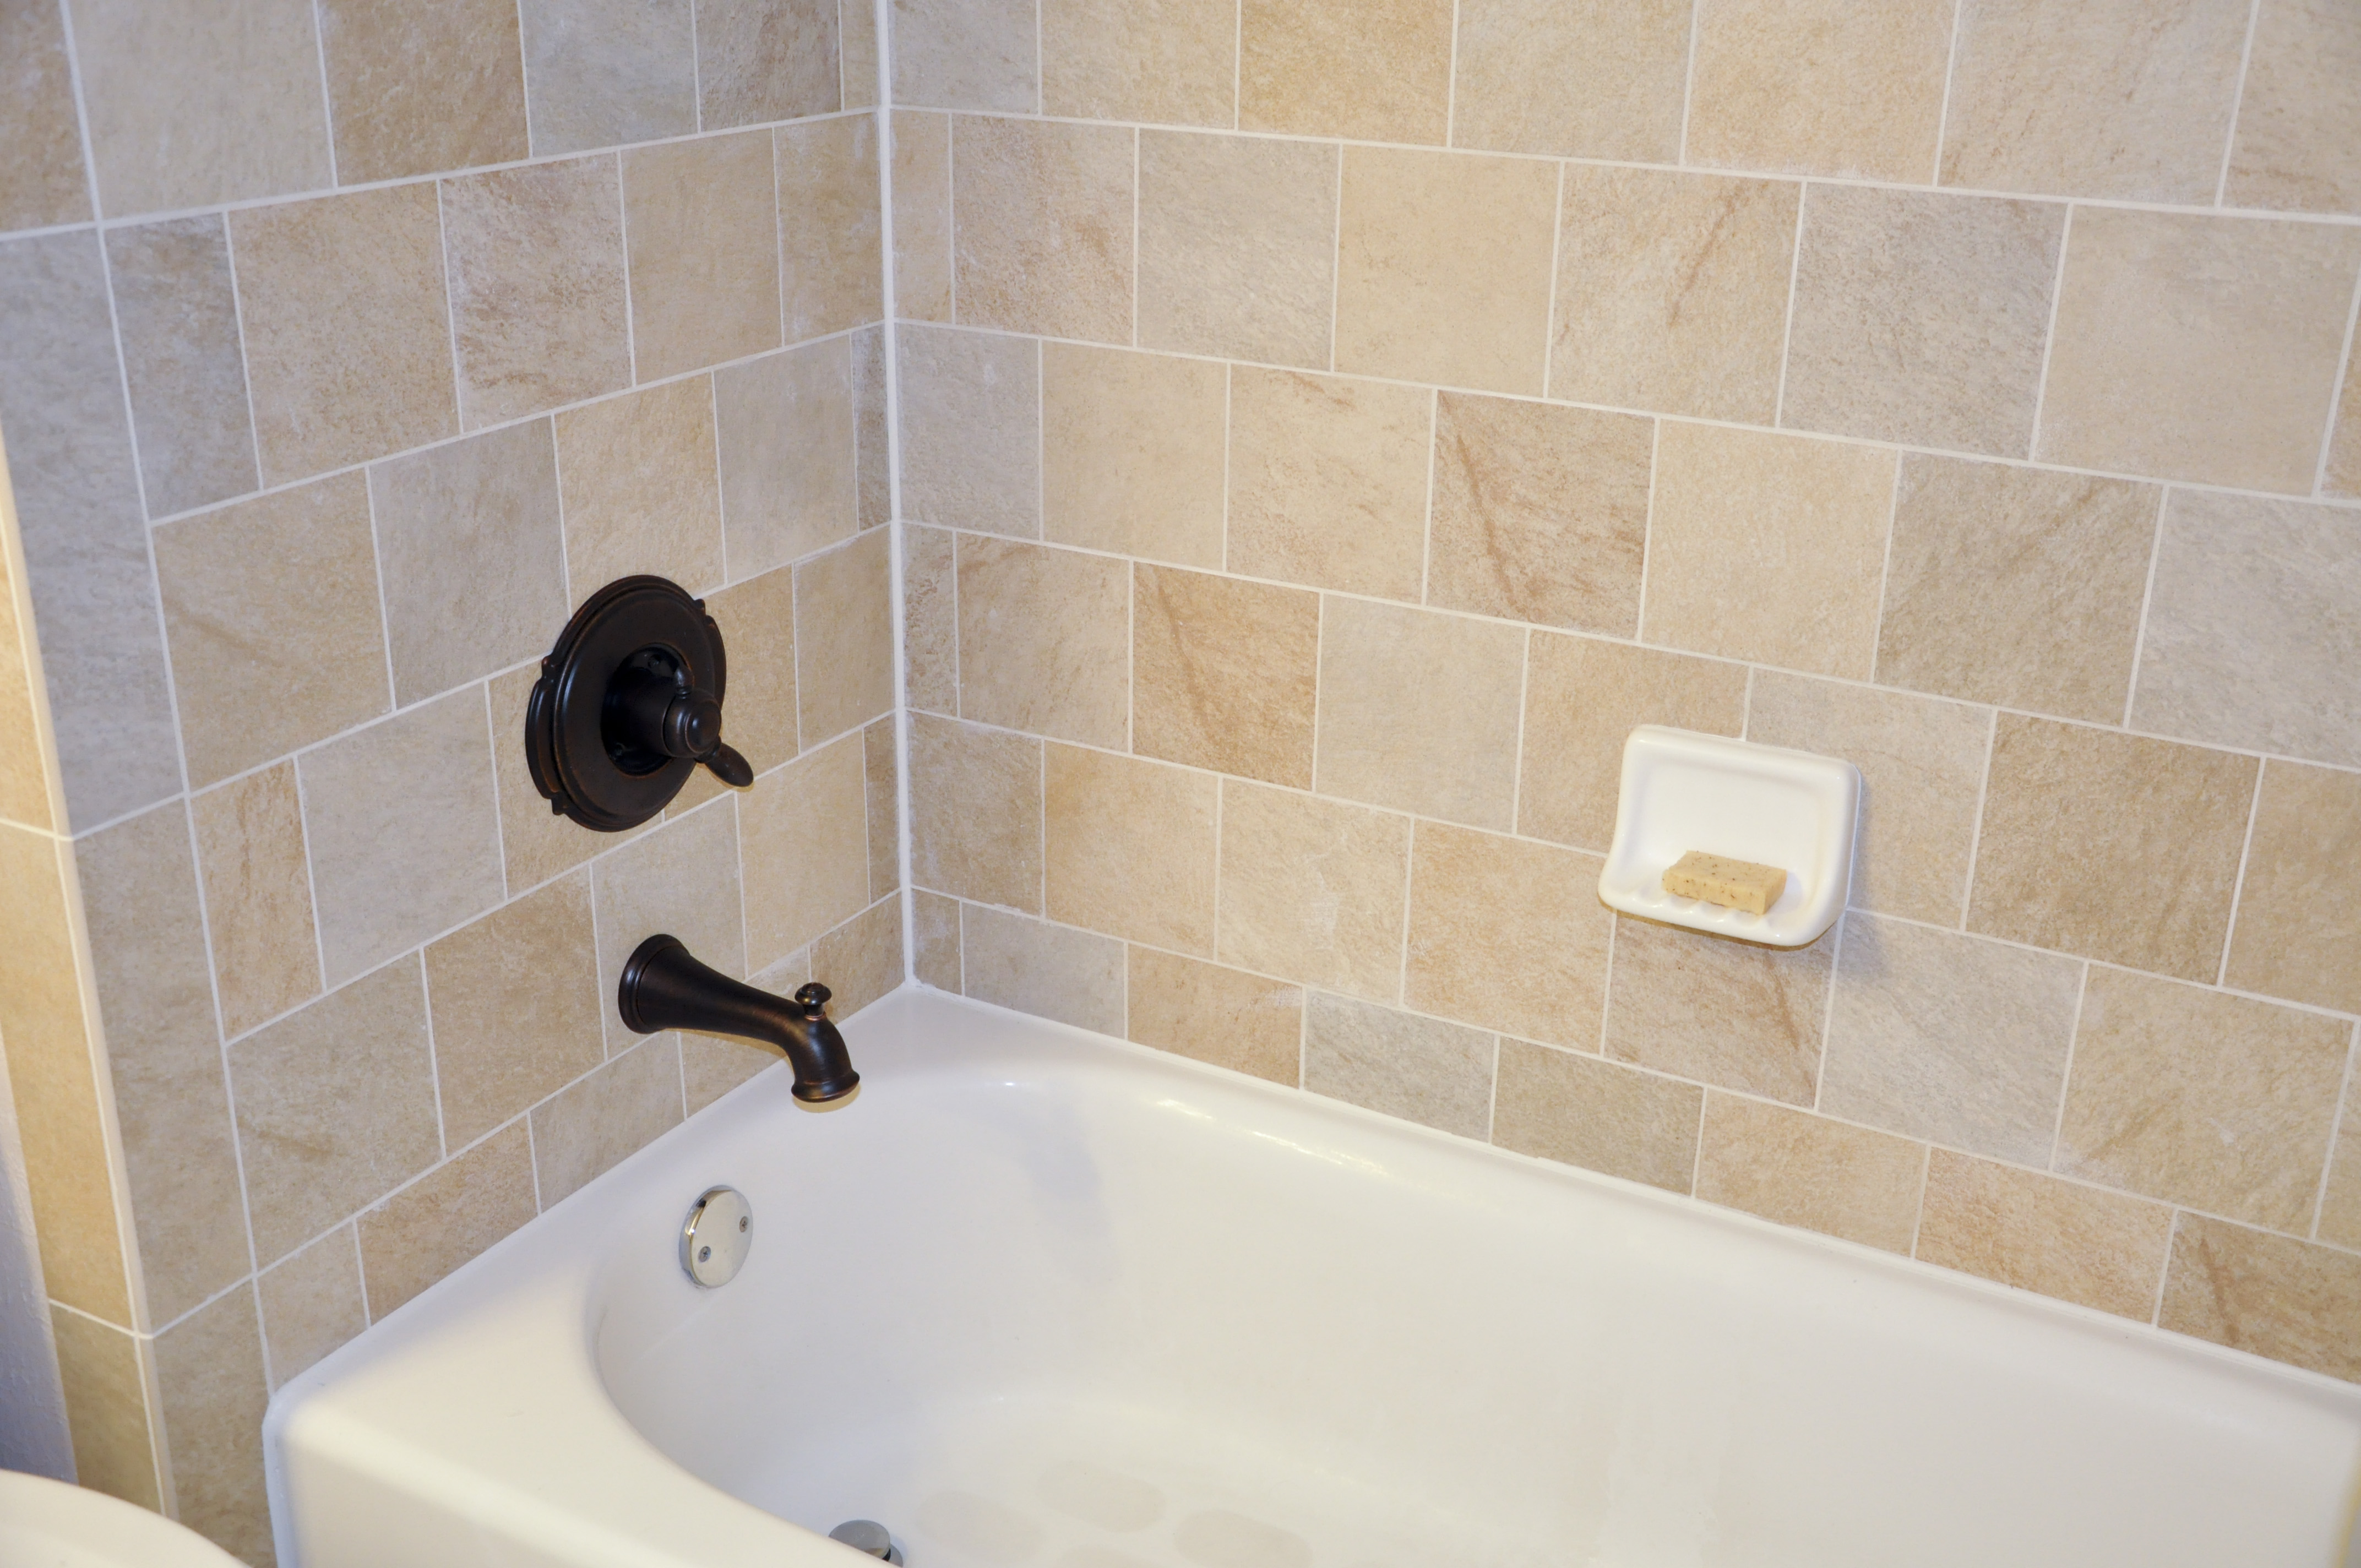 Bathroom Cleaning: How to Remove Mold From Caulk the Easy